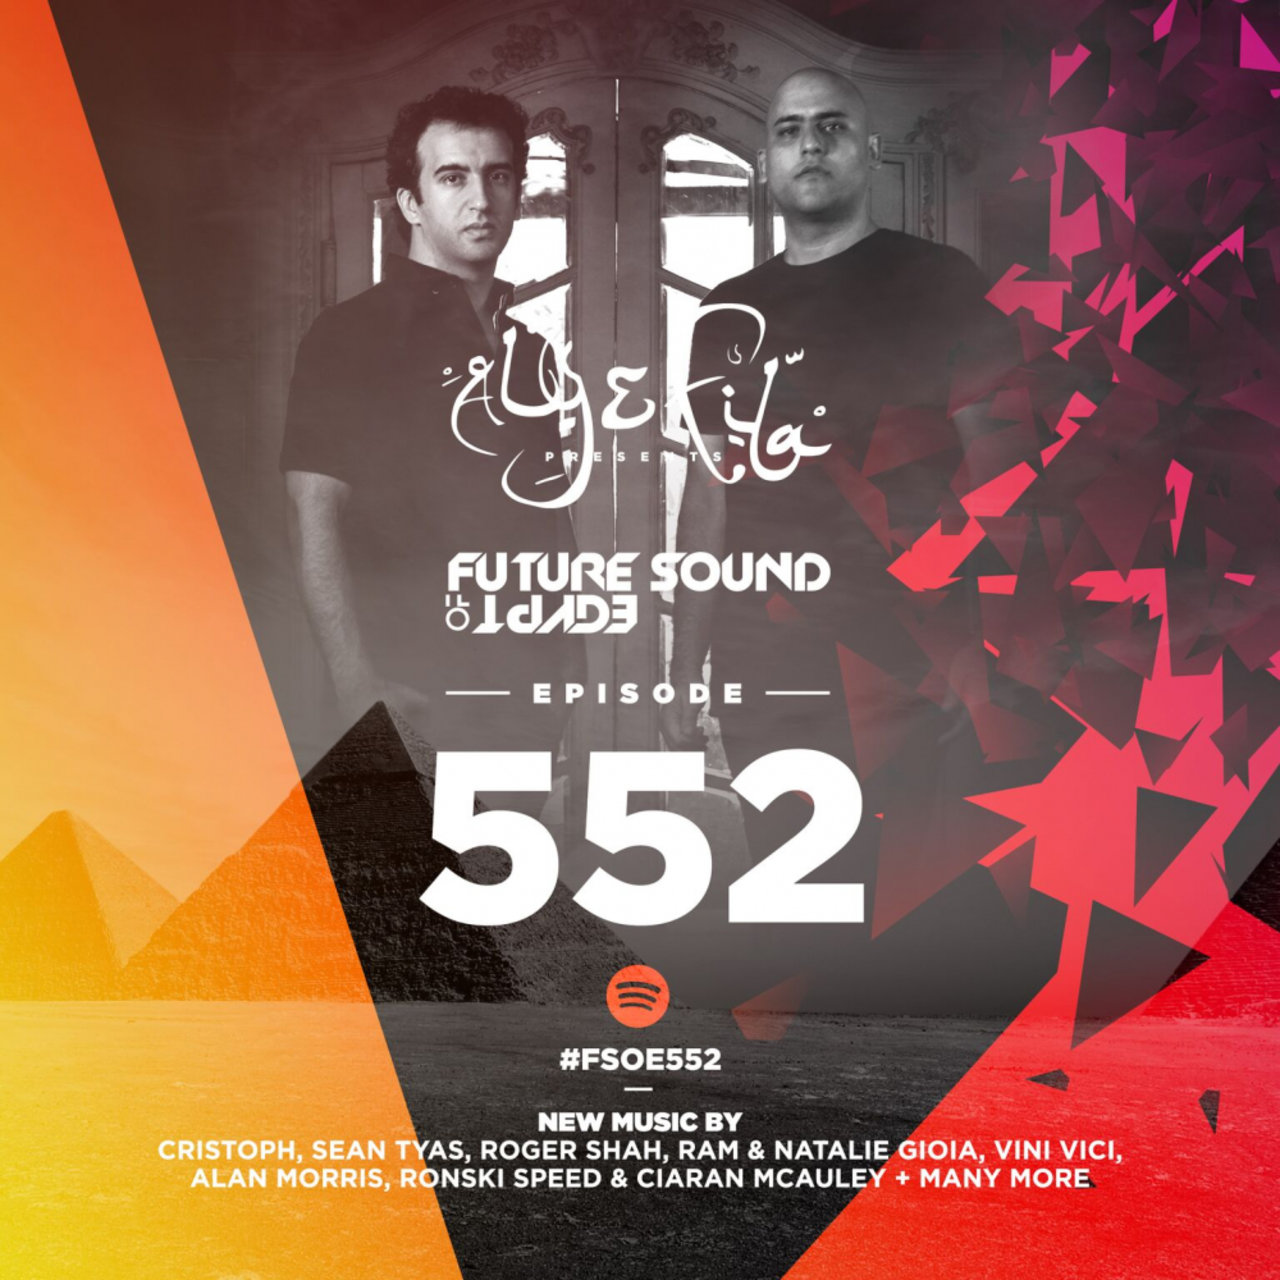 Future Sound Of Egypt Episode 552